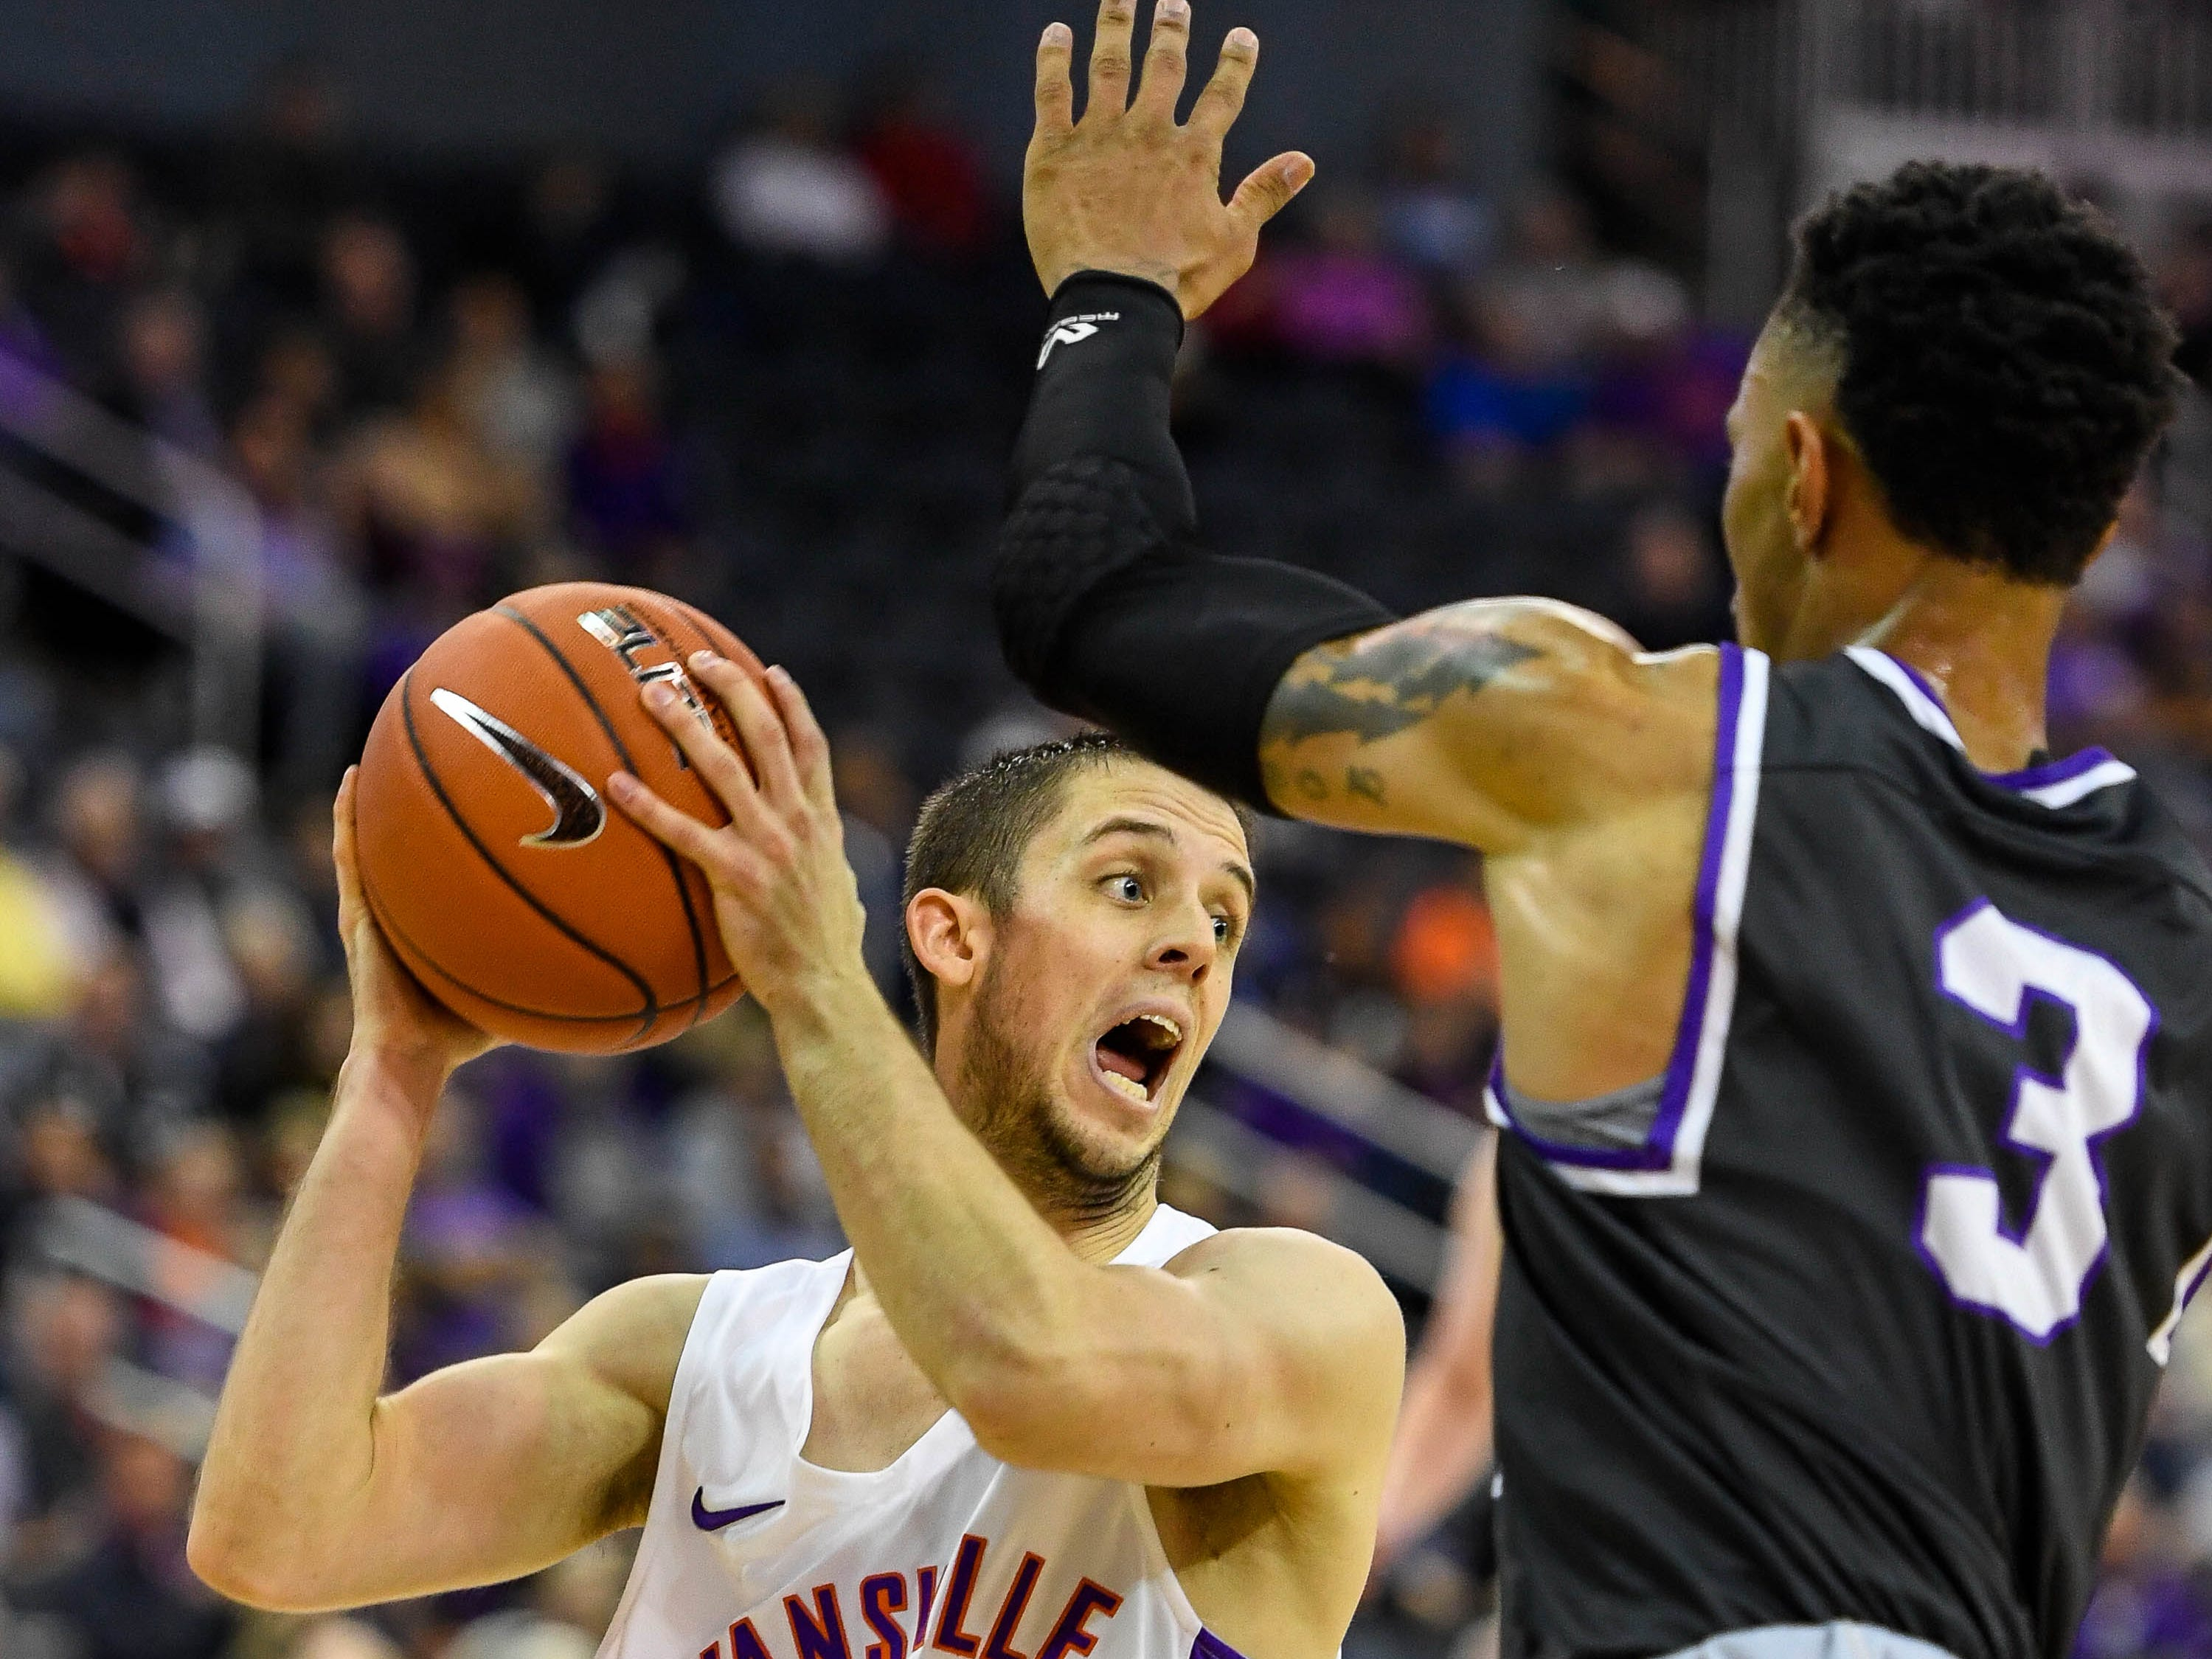 University of Evansville's Shea Feehan (21) looks to pass under pressure from New Mexico Highlands' Gerad Davis(3) as the University of Evansville Purple Aces play the New Mexico Highlands Cowboys in a exhibition game at the Ford Center Saturday, November 3, 2018.